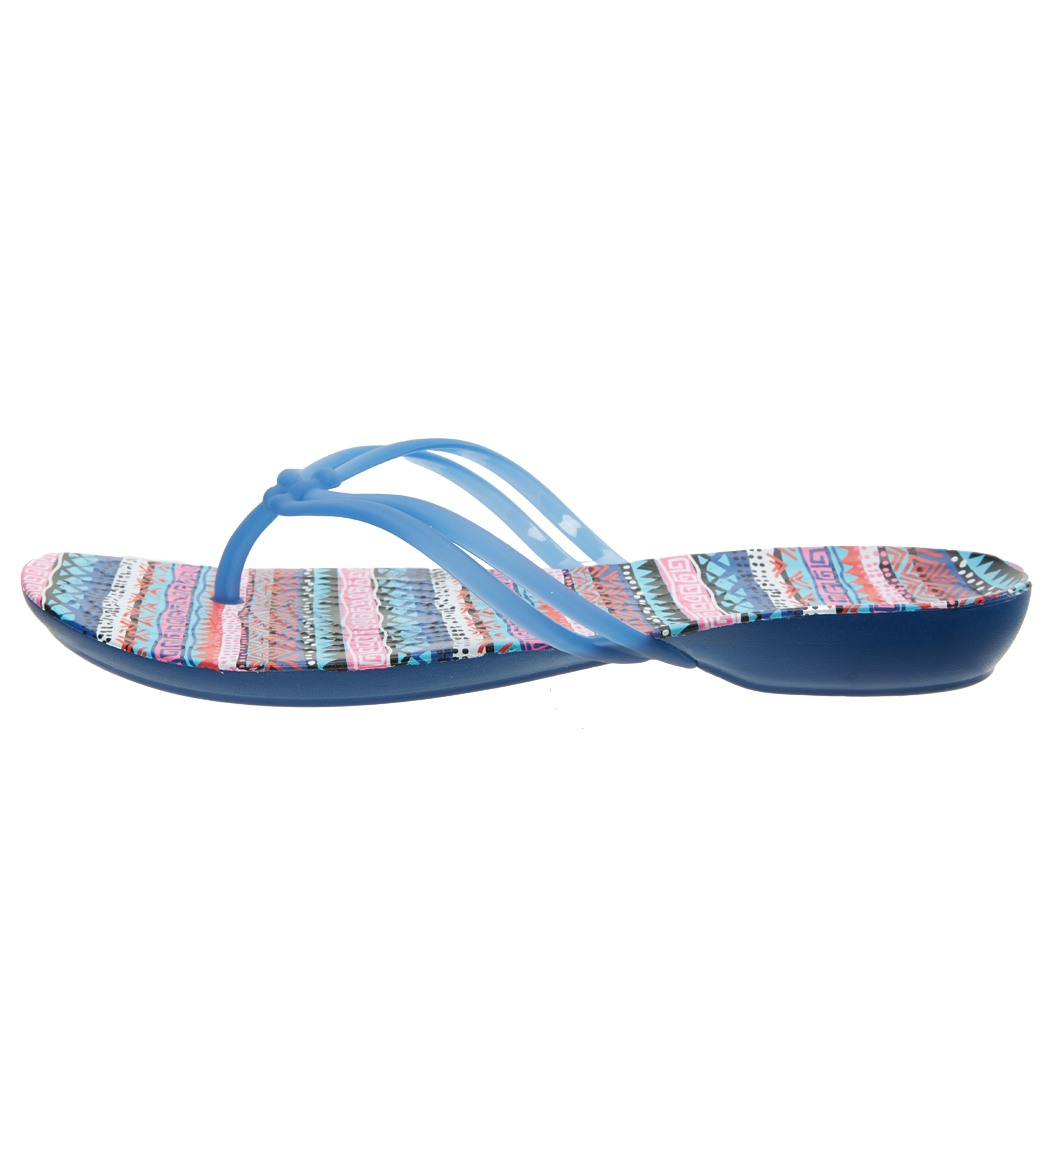 8ed9b7009 Crocs Women s Isabella Graphic Flip Flop at SwimOutlet.com